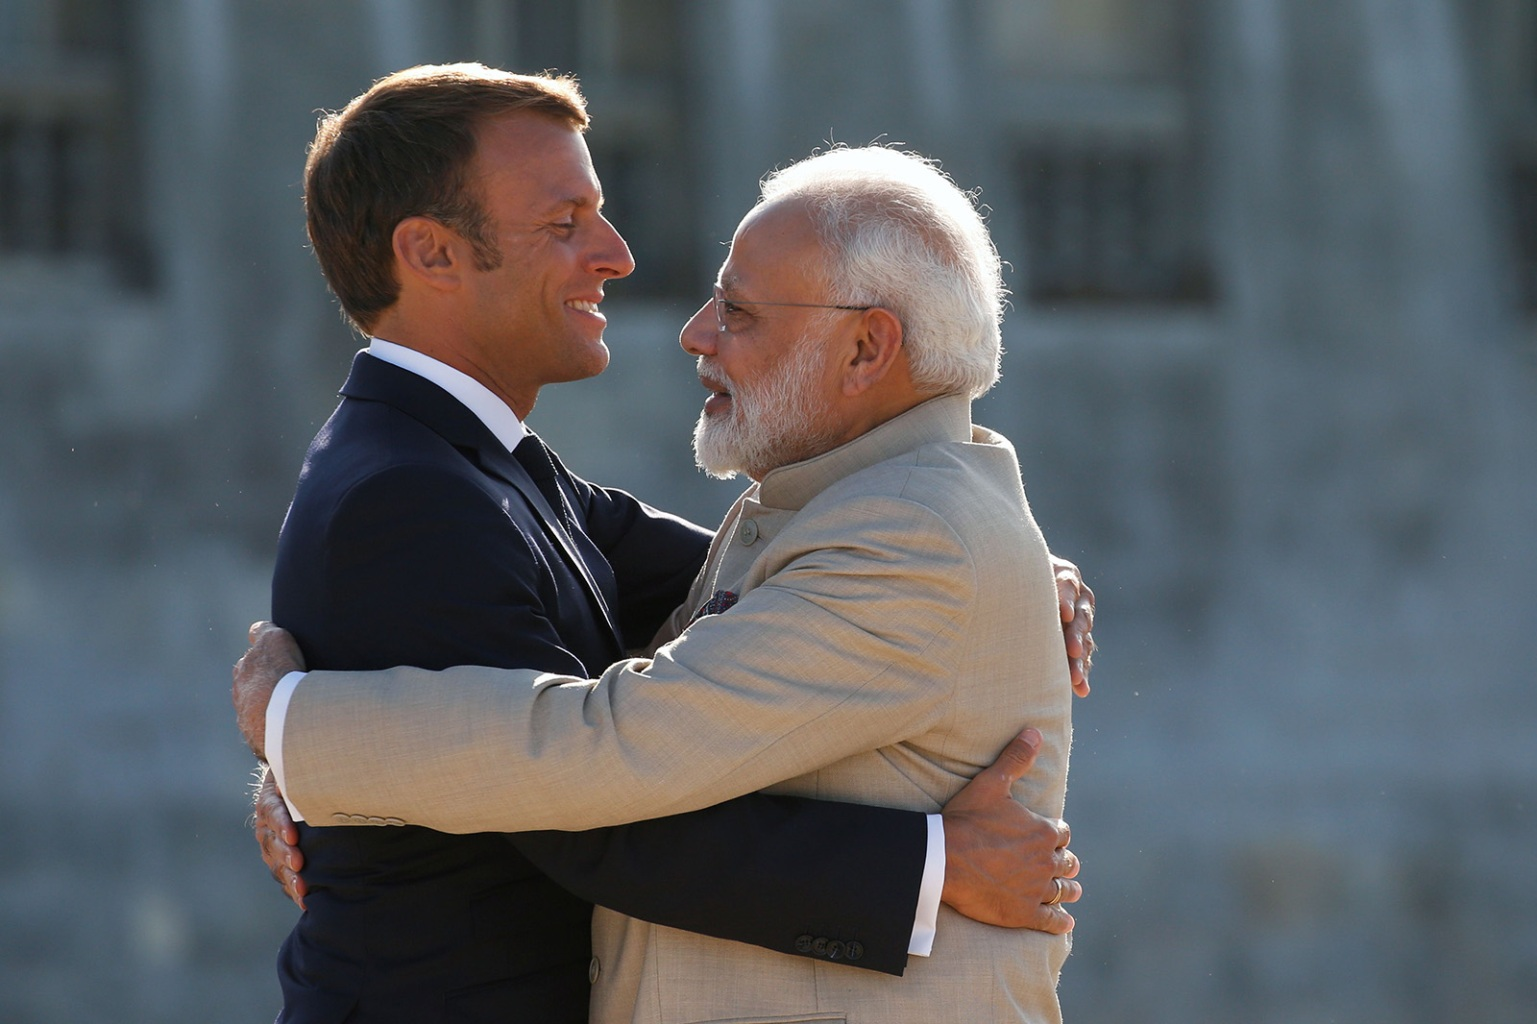 French President Emmanuel Macron hugs Indian Prime Minister Narendra Modi as he welcomes him before their meeting at the Chateau of Chantilly, near Paris, on Aug. 22. PASCAL ROSSIGNOL/AFP/Getty Images